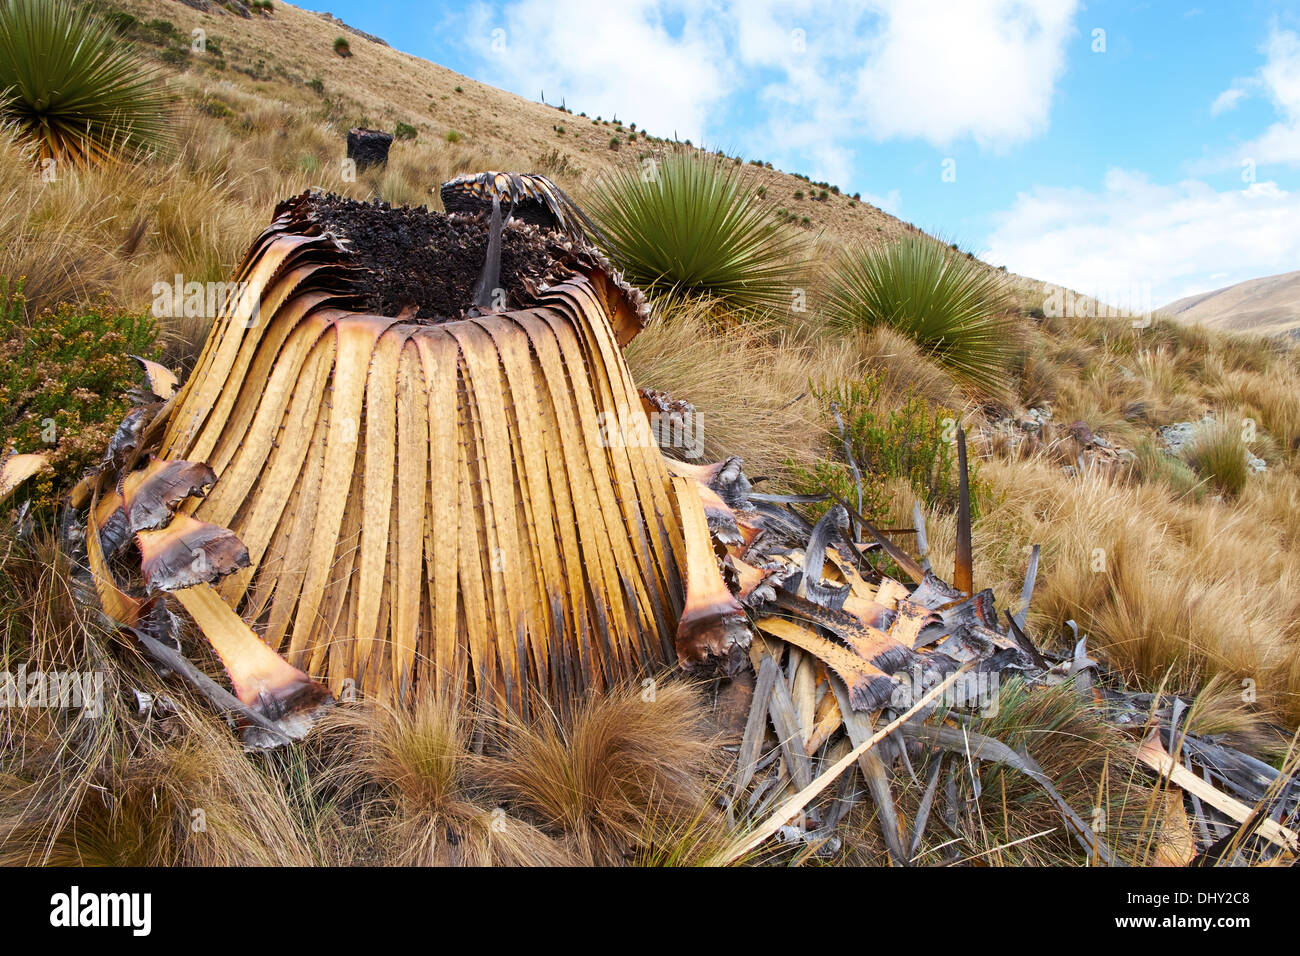 Burnt Puya Raimondii Plants high up in the Peruvian Andes, South America. - Stock Image